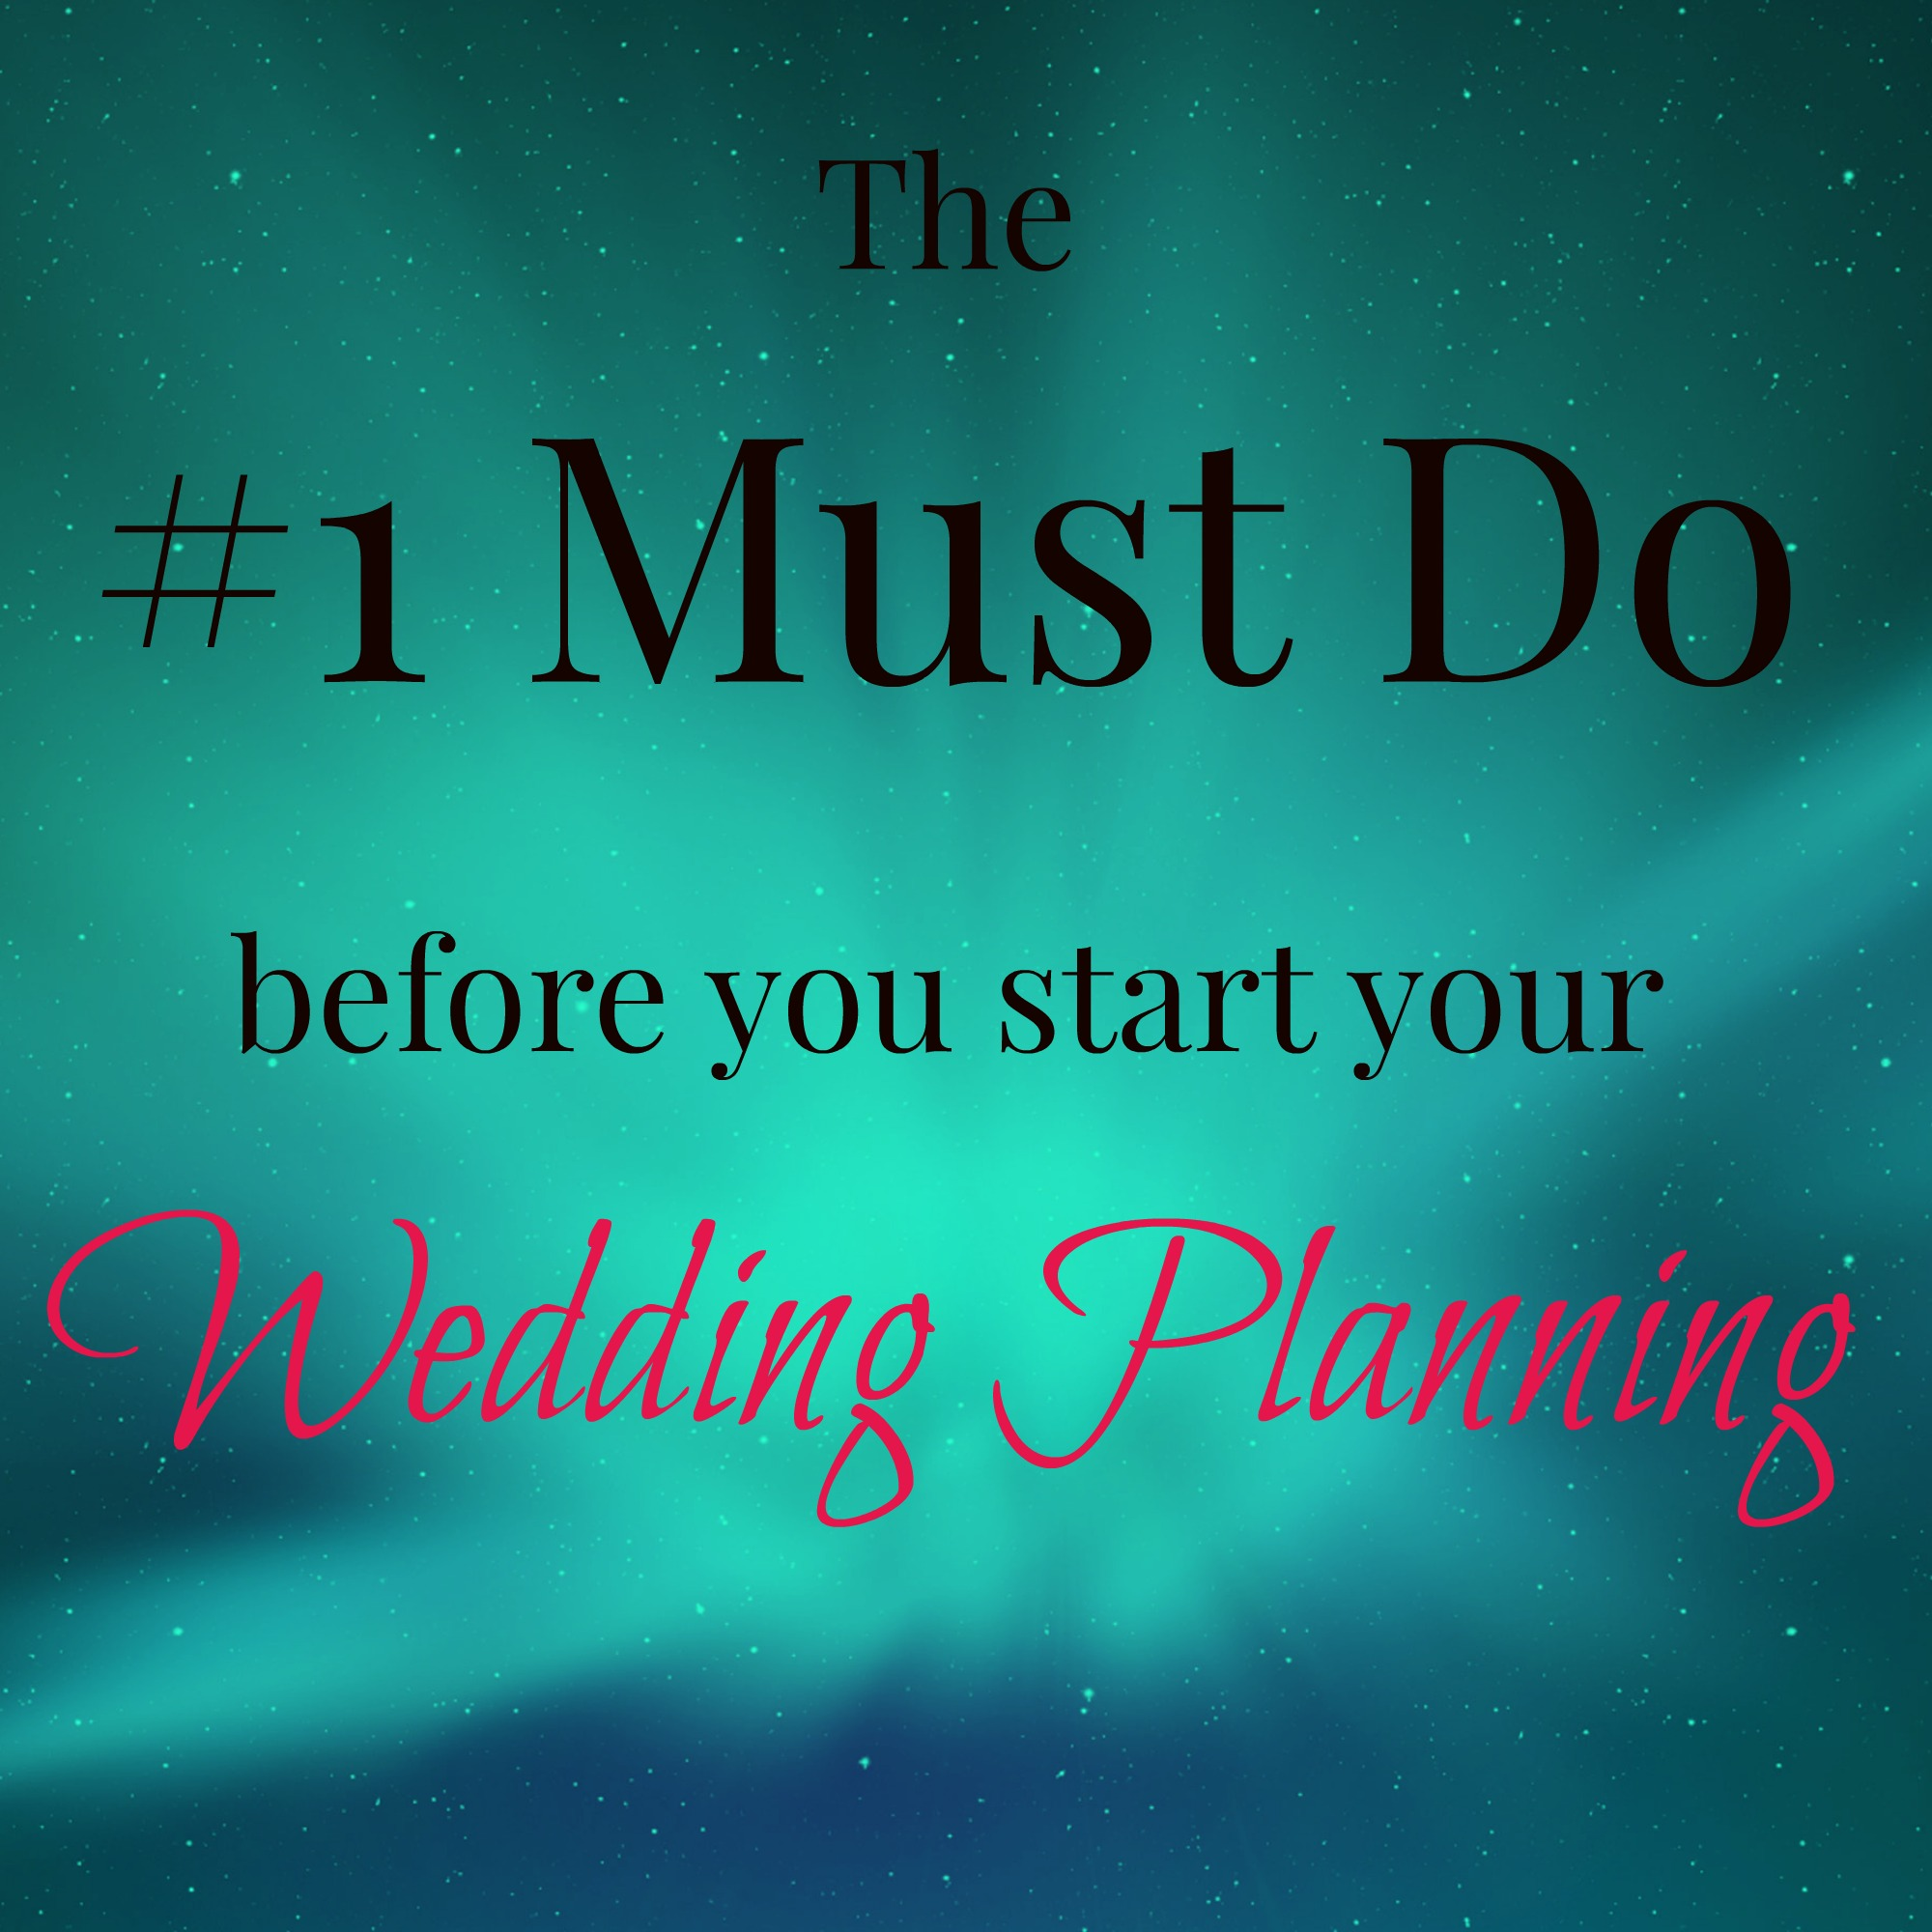 The #1 Must Do Before You Start Your Wedding Planning